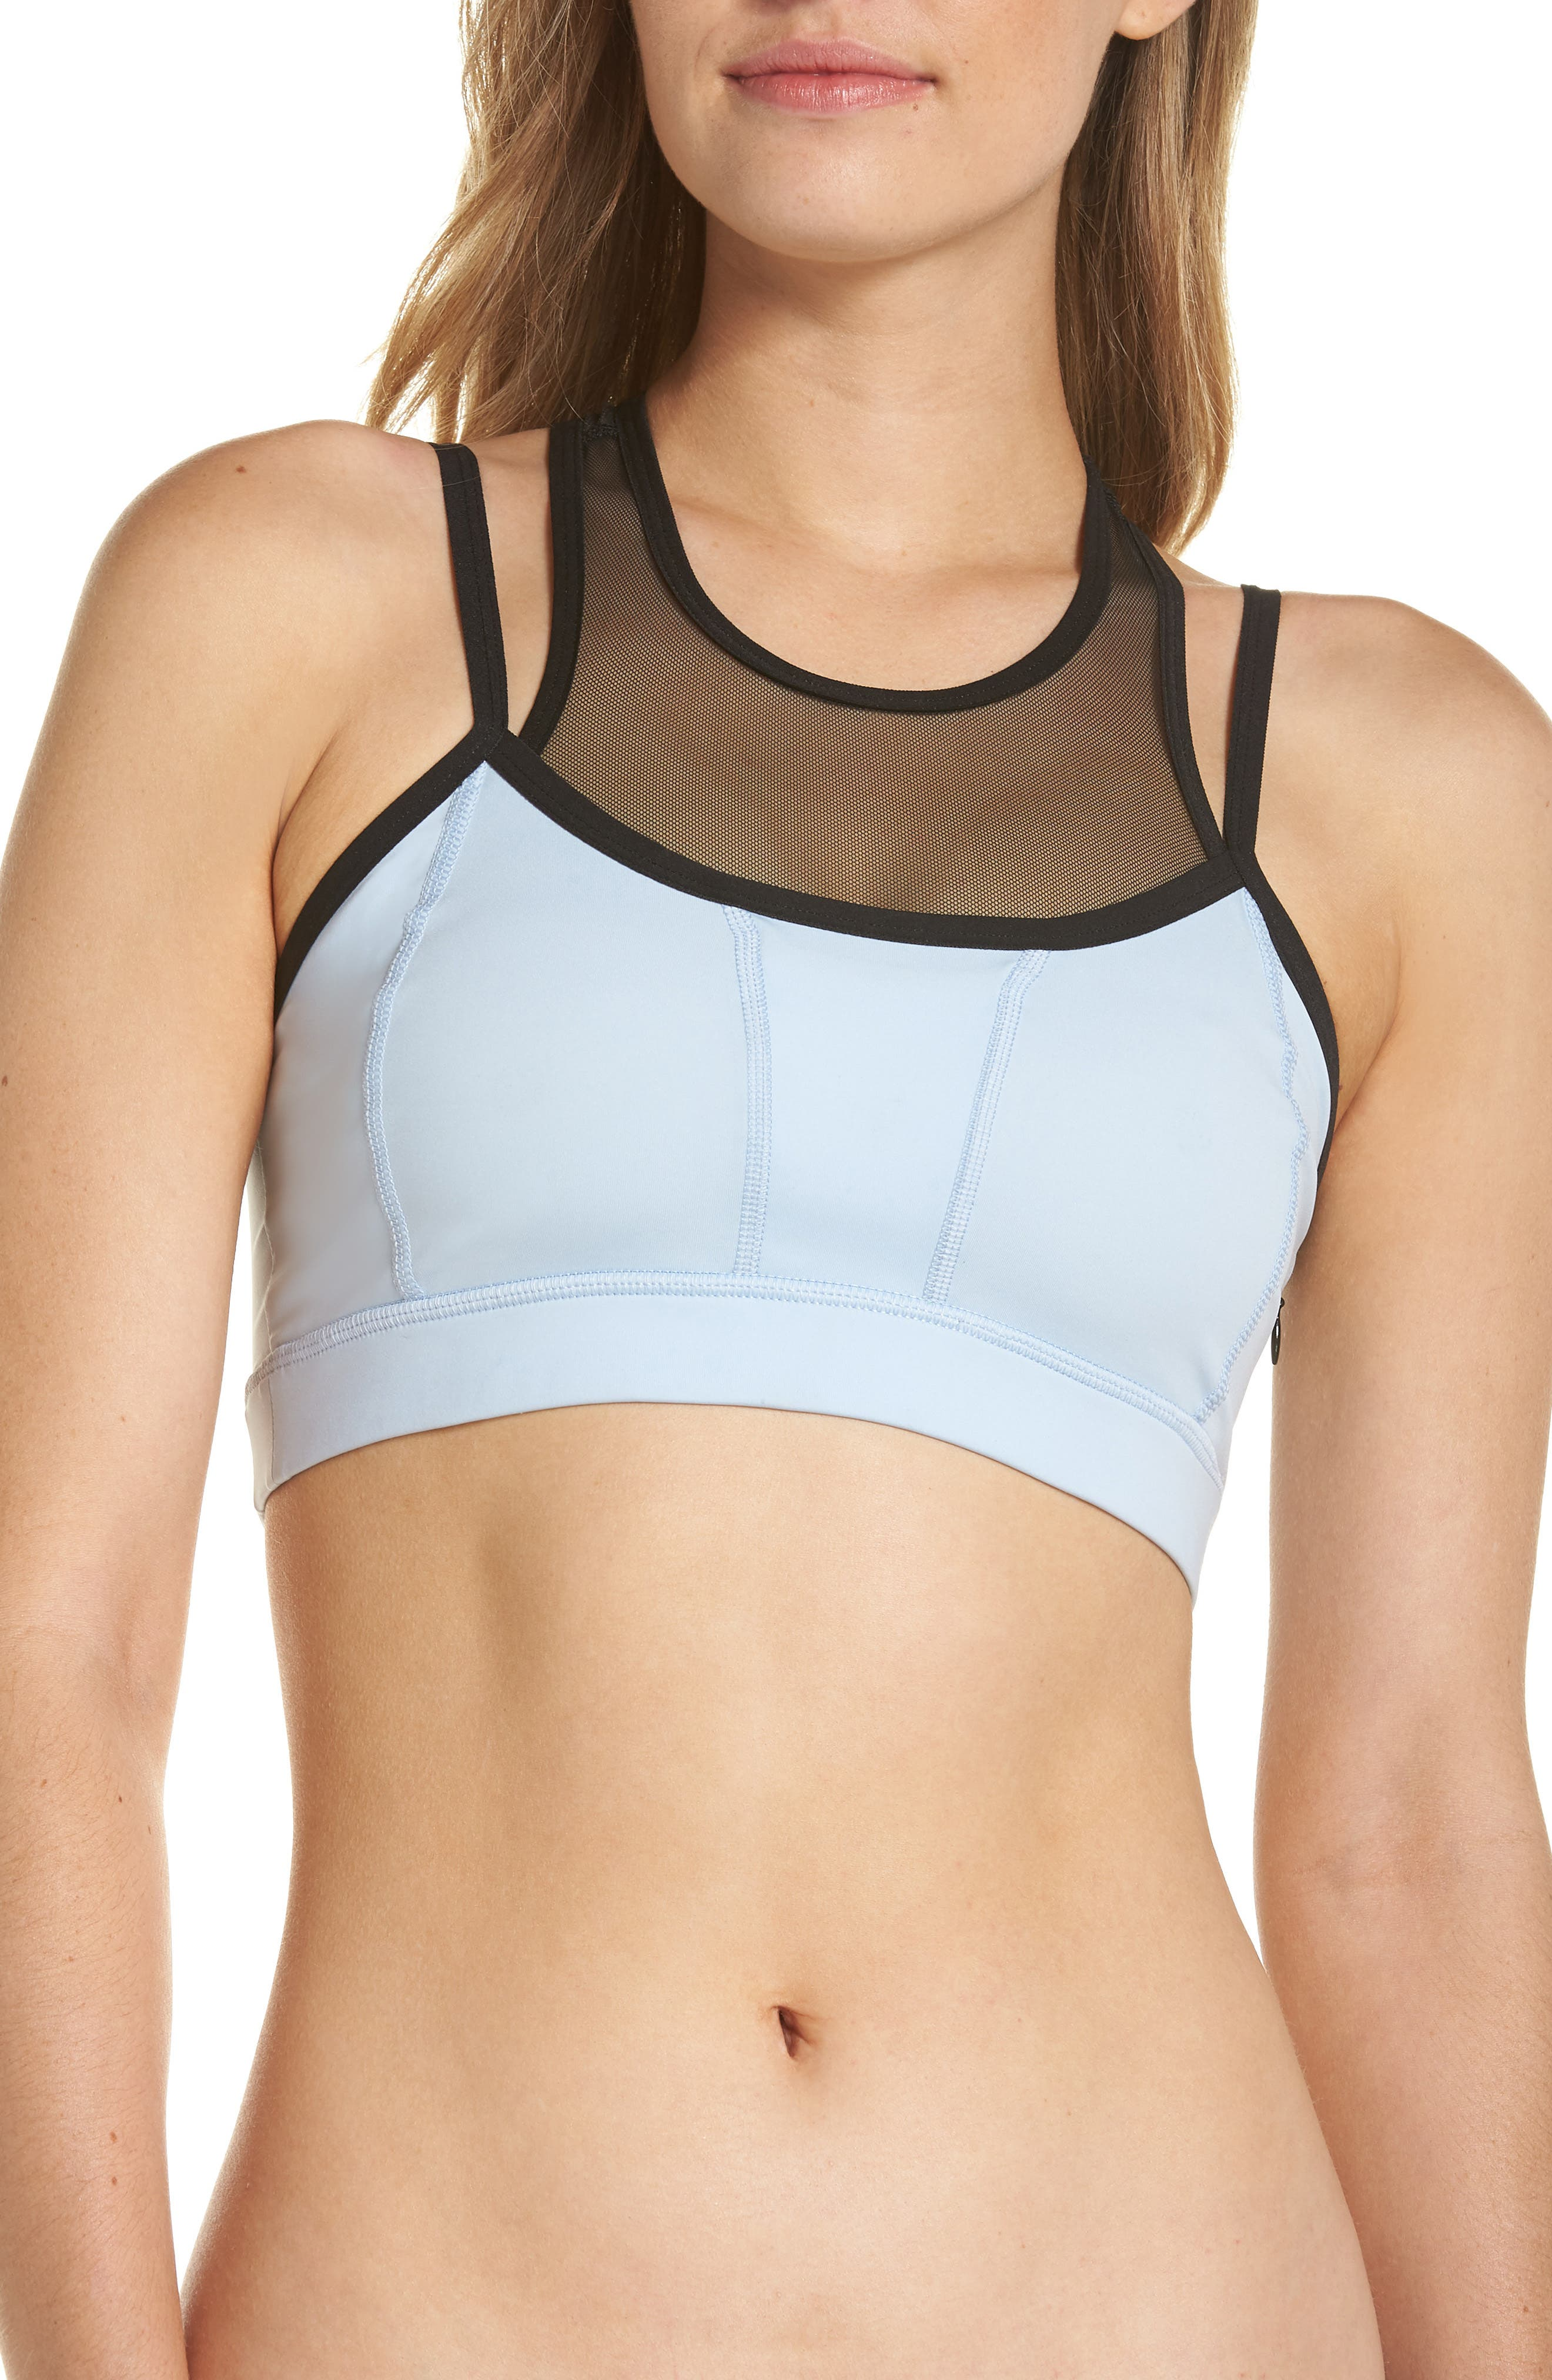 Stealth Sports Bra,                         Main,                         color, BLUE CASHMERE